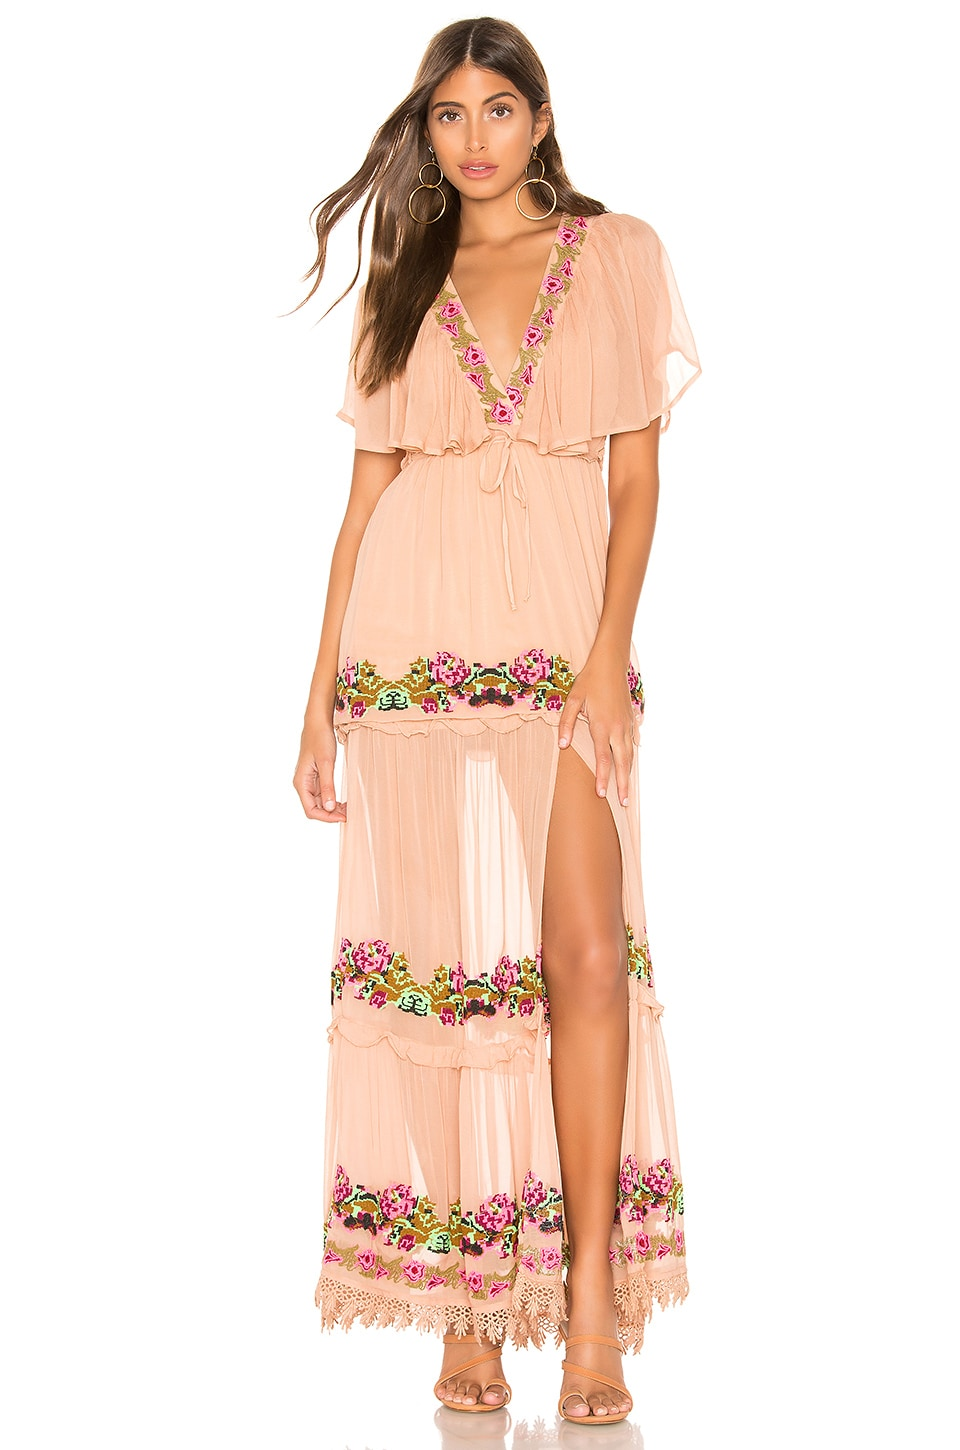 Tularosa Coraline Embroidered Dress in Nude